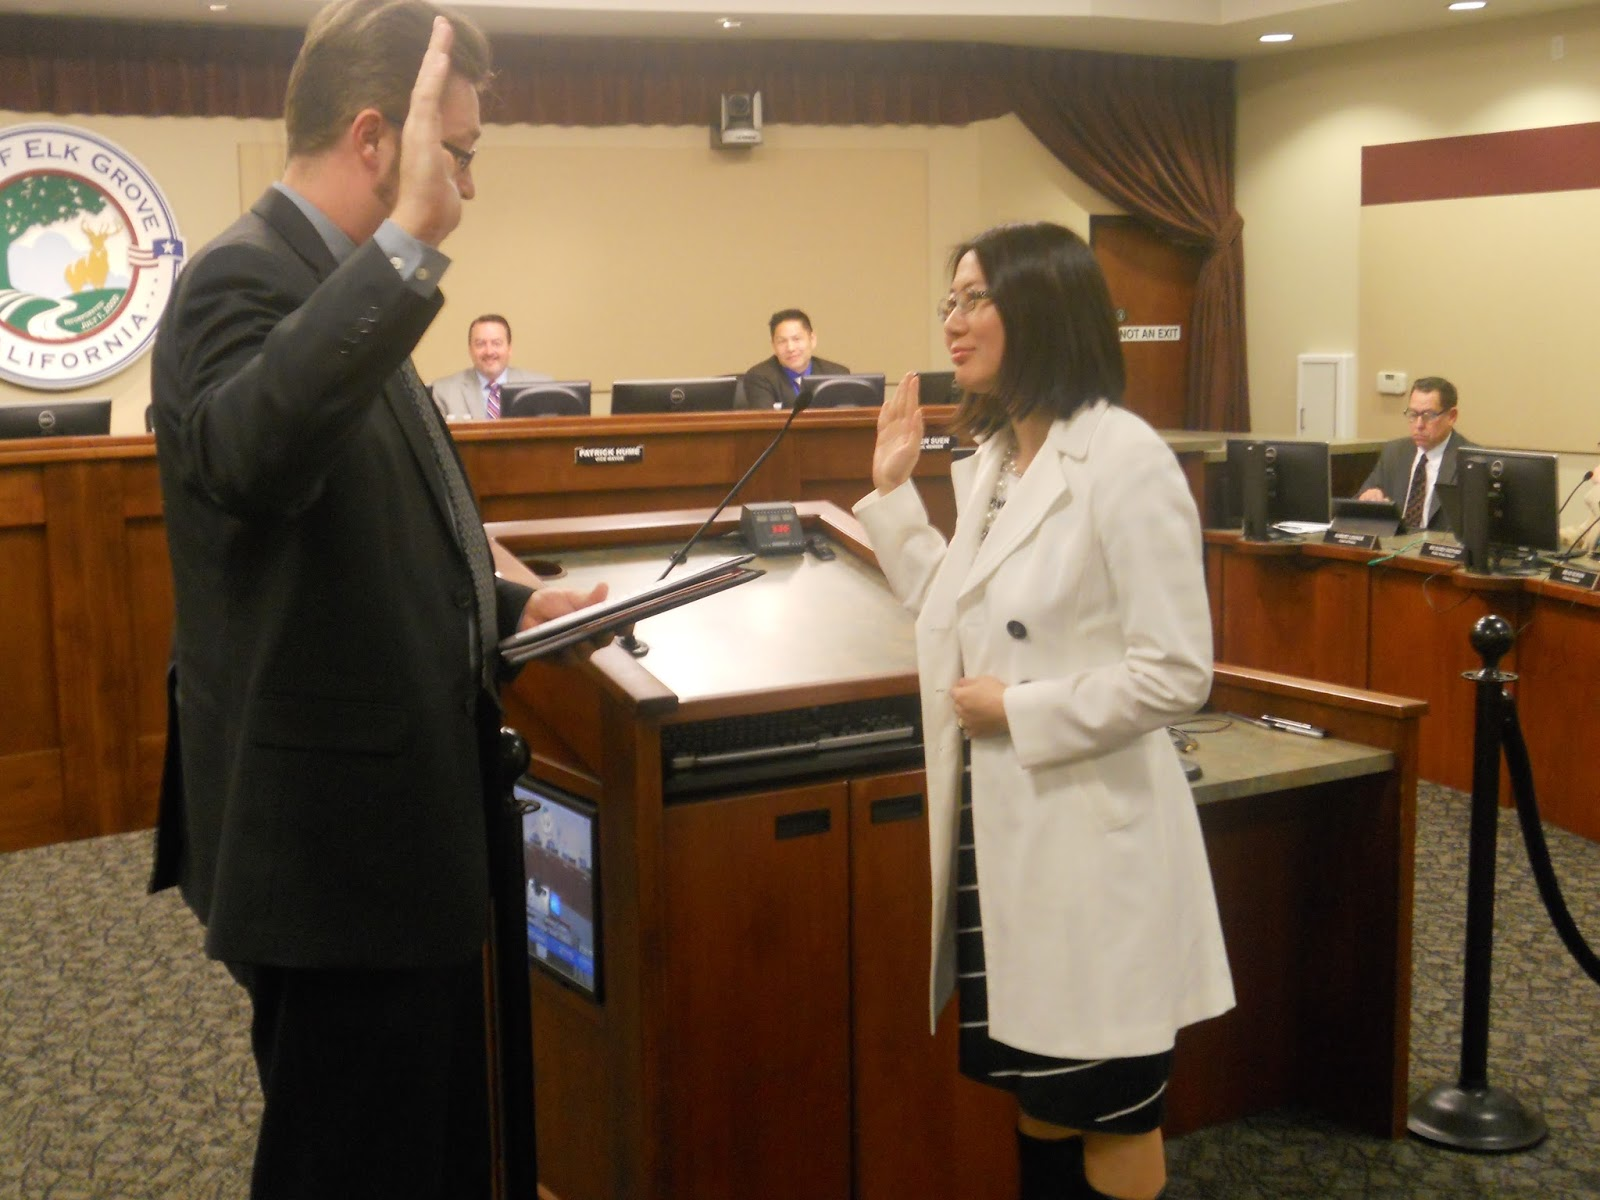 Tong Selected as New Elk Grove Planning Commissioner